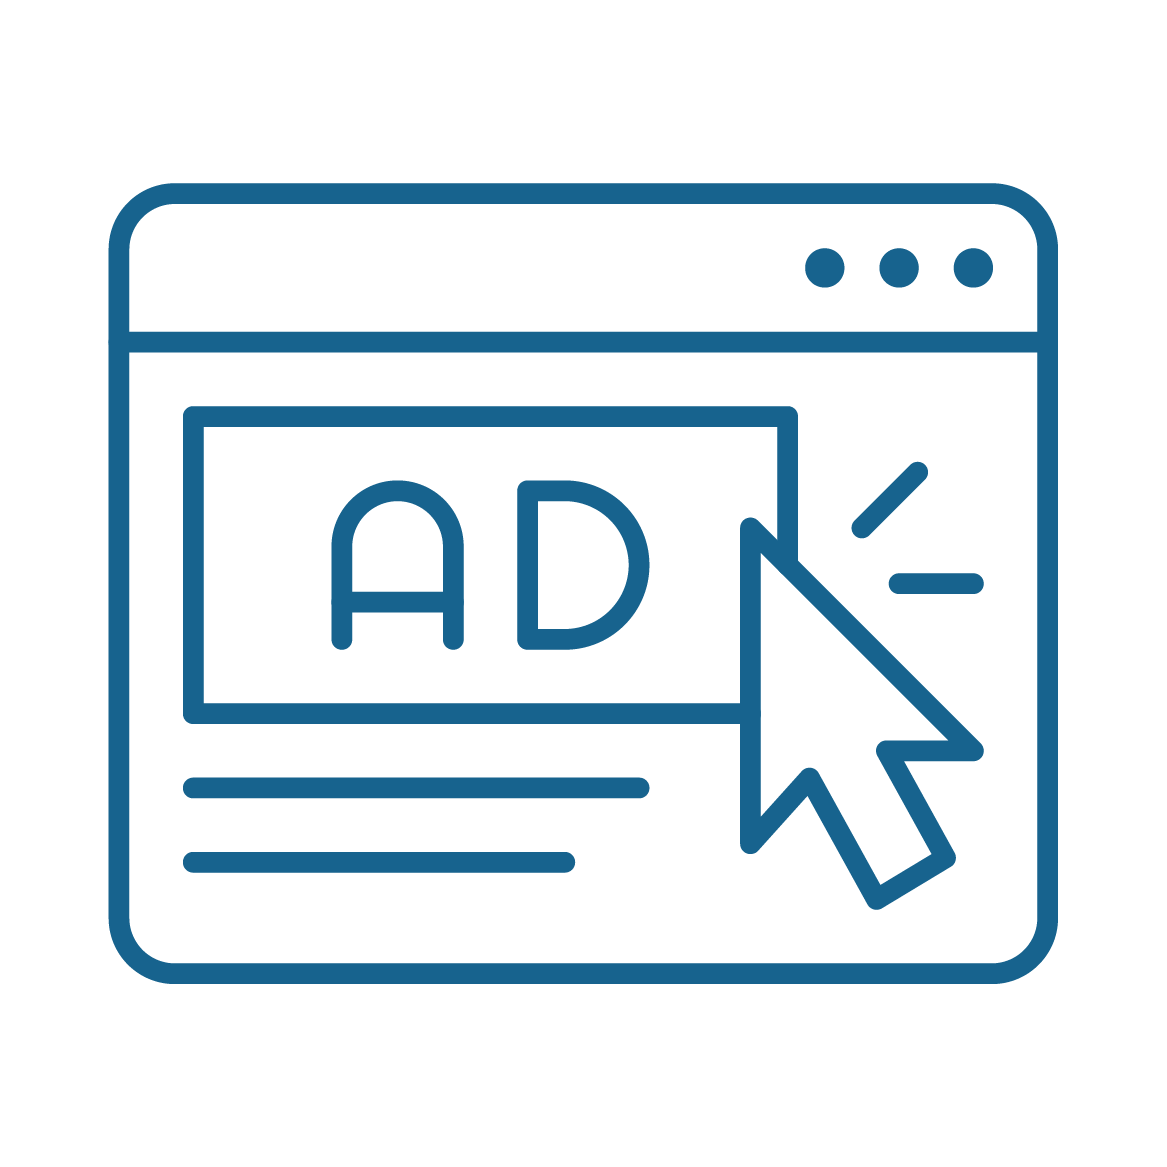 Digital Advertising Icon